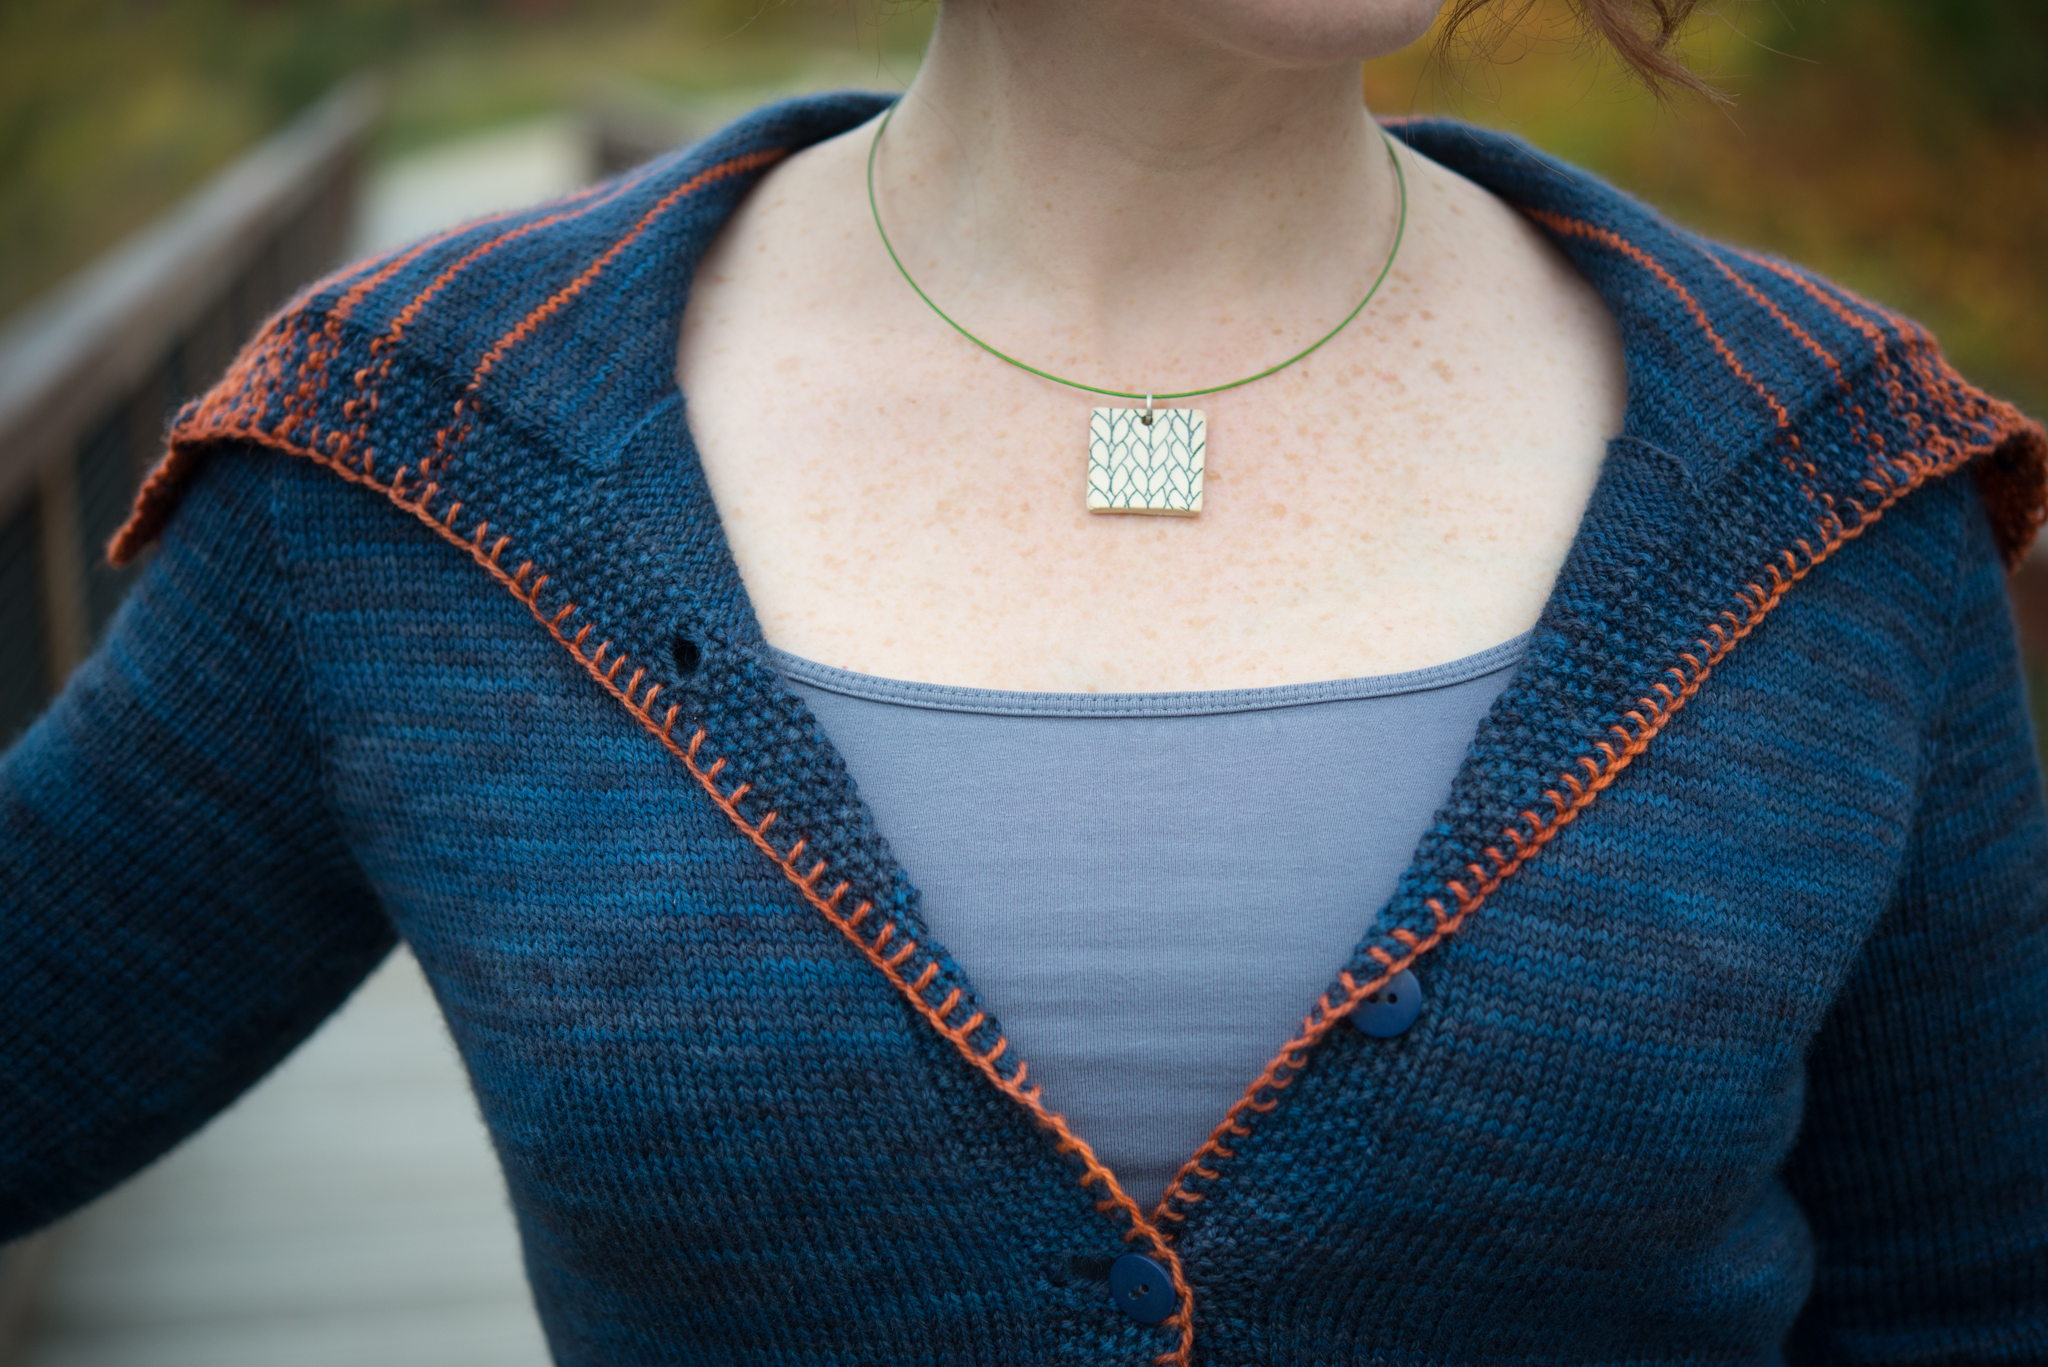 Knitting A Sweater Neckline : The ins & outs of necklines amy herzog designs